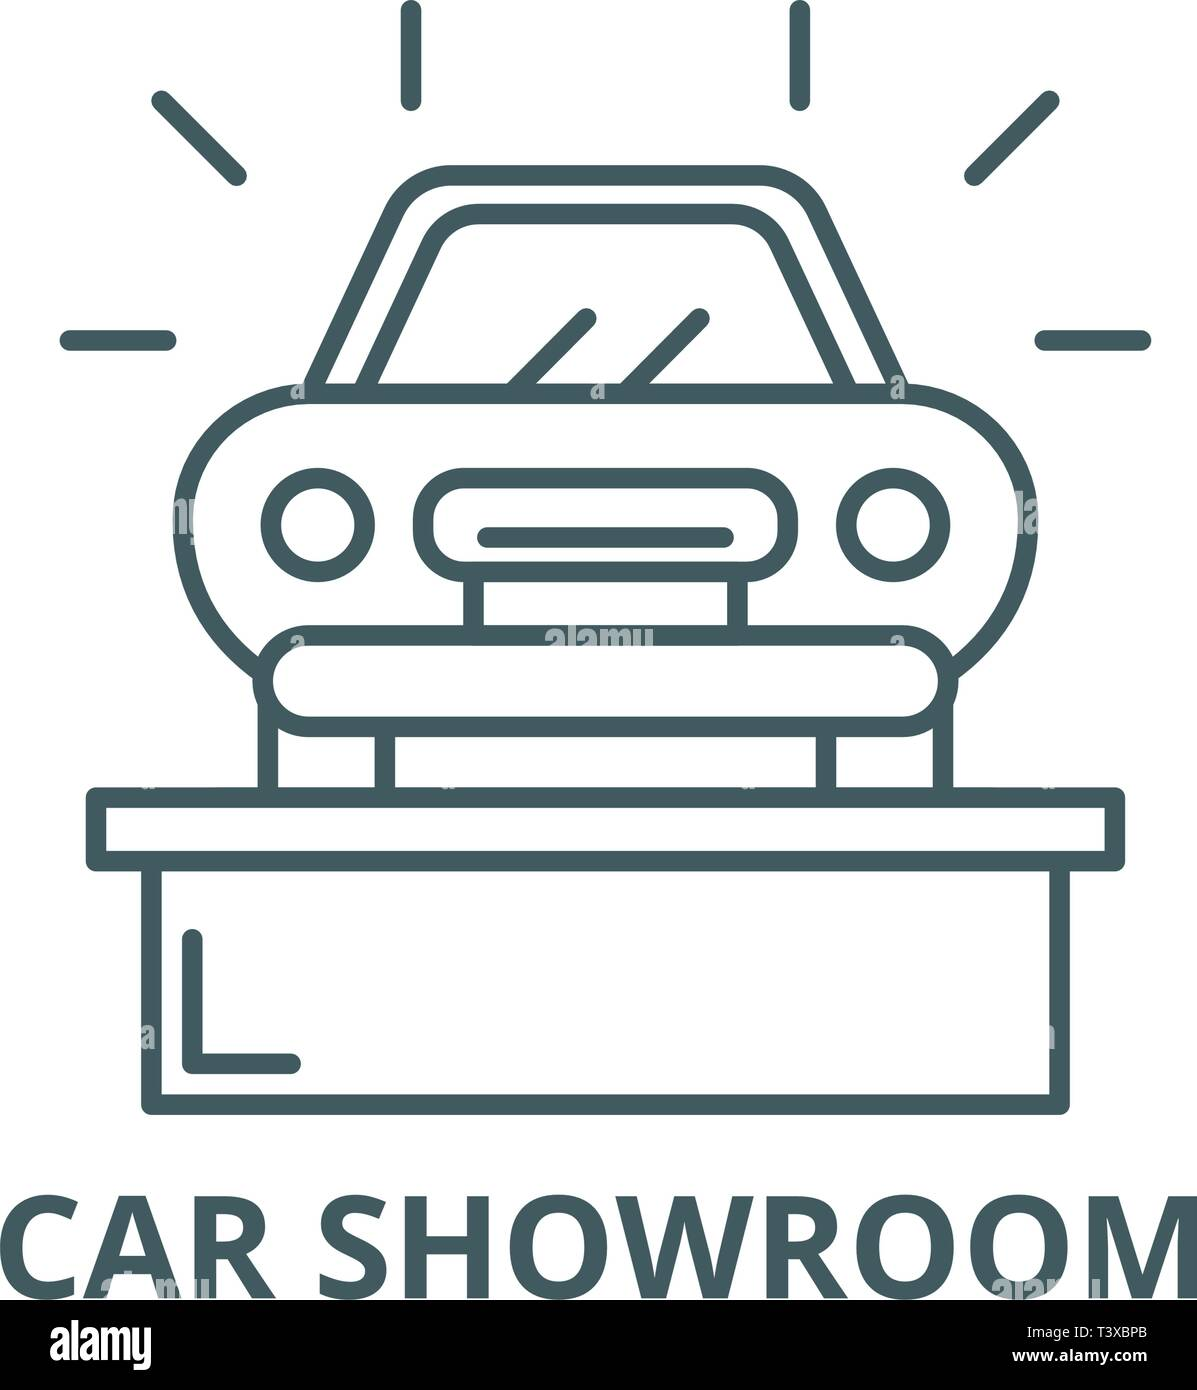 Incredible Car Showroom Line Icon Vector Car Showroom Outline Sign Download Free Architecture Designs Scobabritishbridgeorg